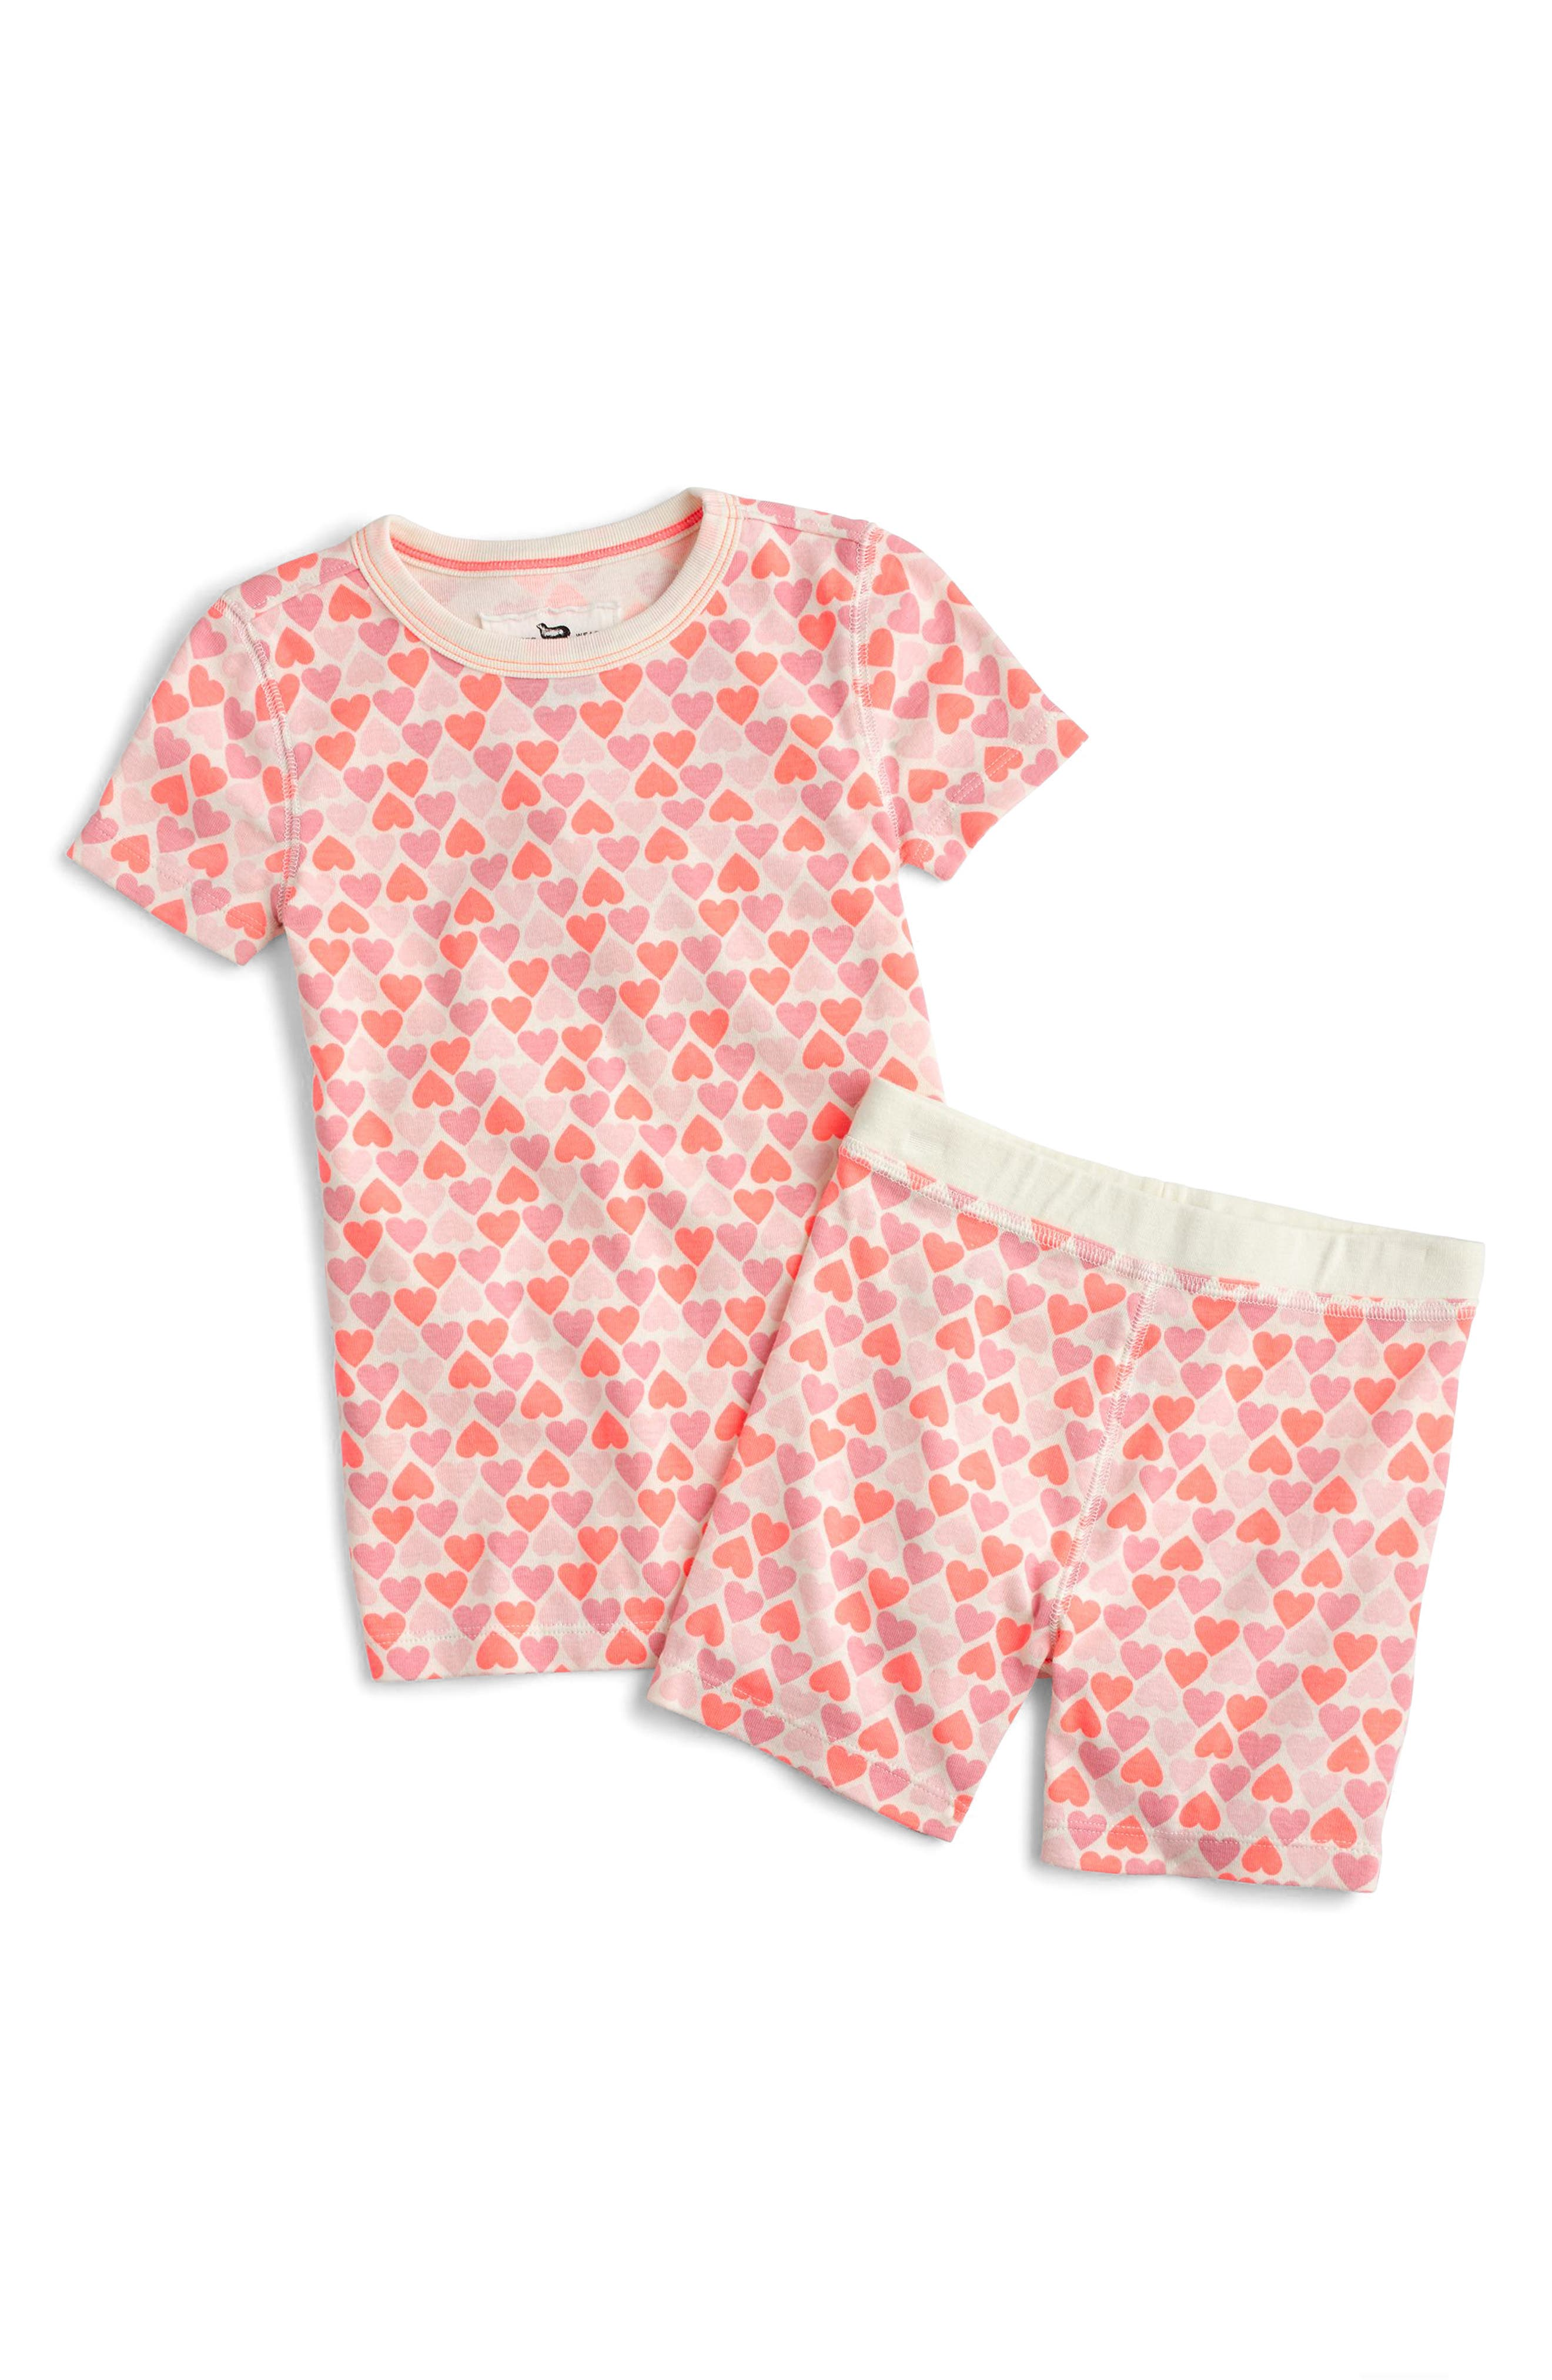 Alternate Image 1 Selected - crewcuts by J.Crew Stacked Hearts Fitted Two-Piece Pajamas (Toddler Girls, Little Girls & Big Girls)